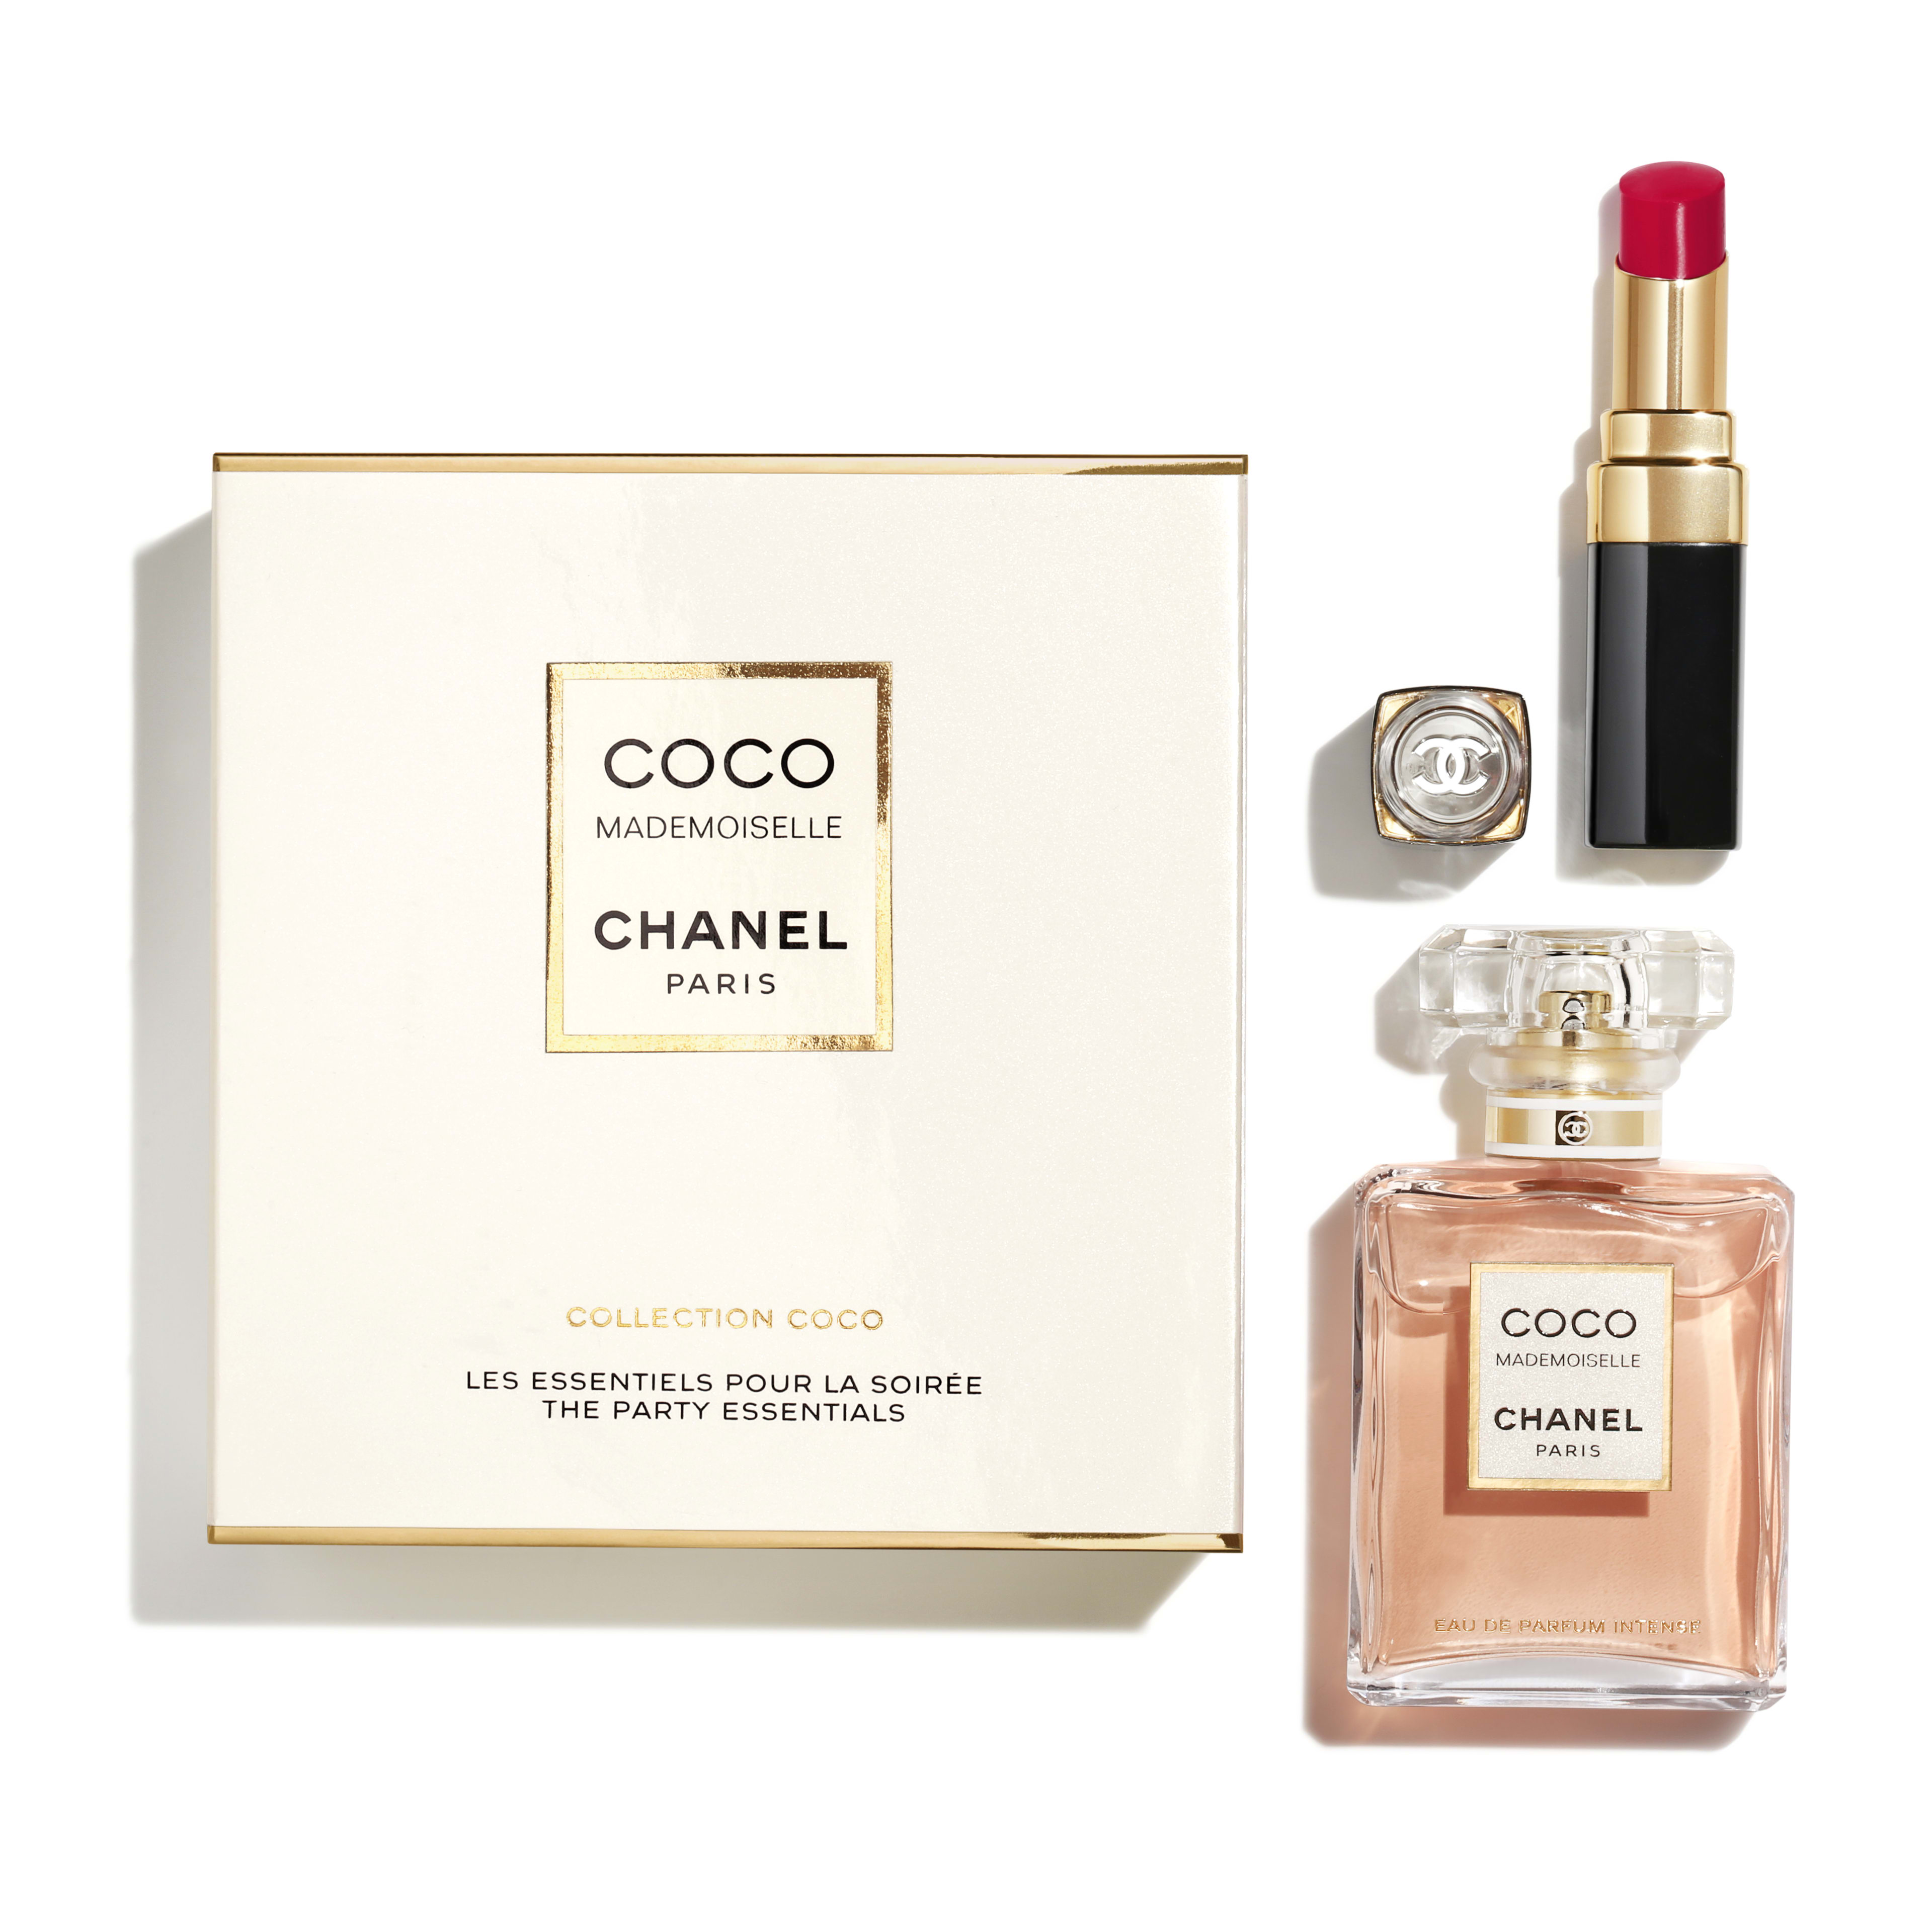 Coco Mademoiselle - Cologne & Fragrance   CHANEL